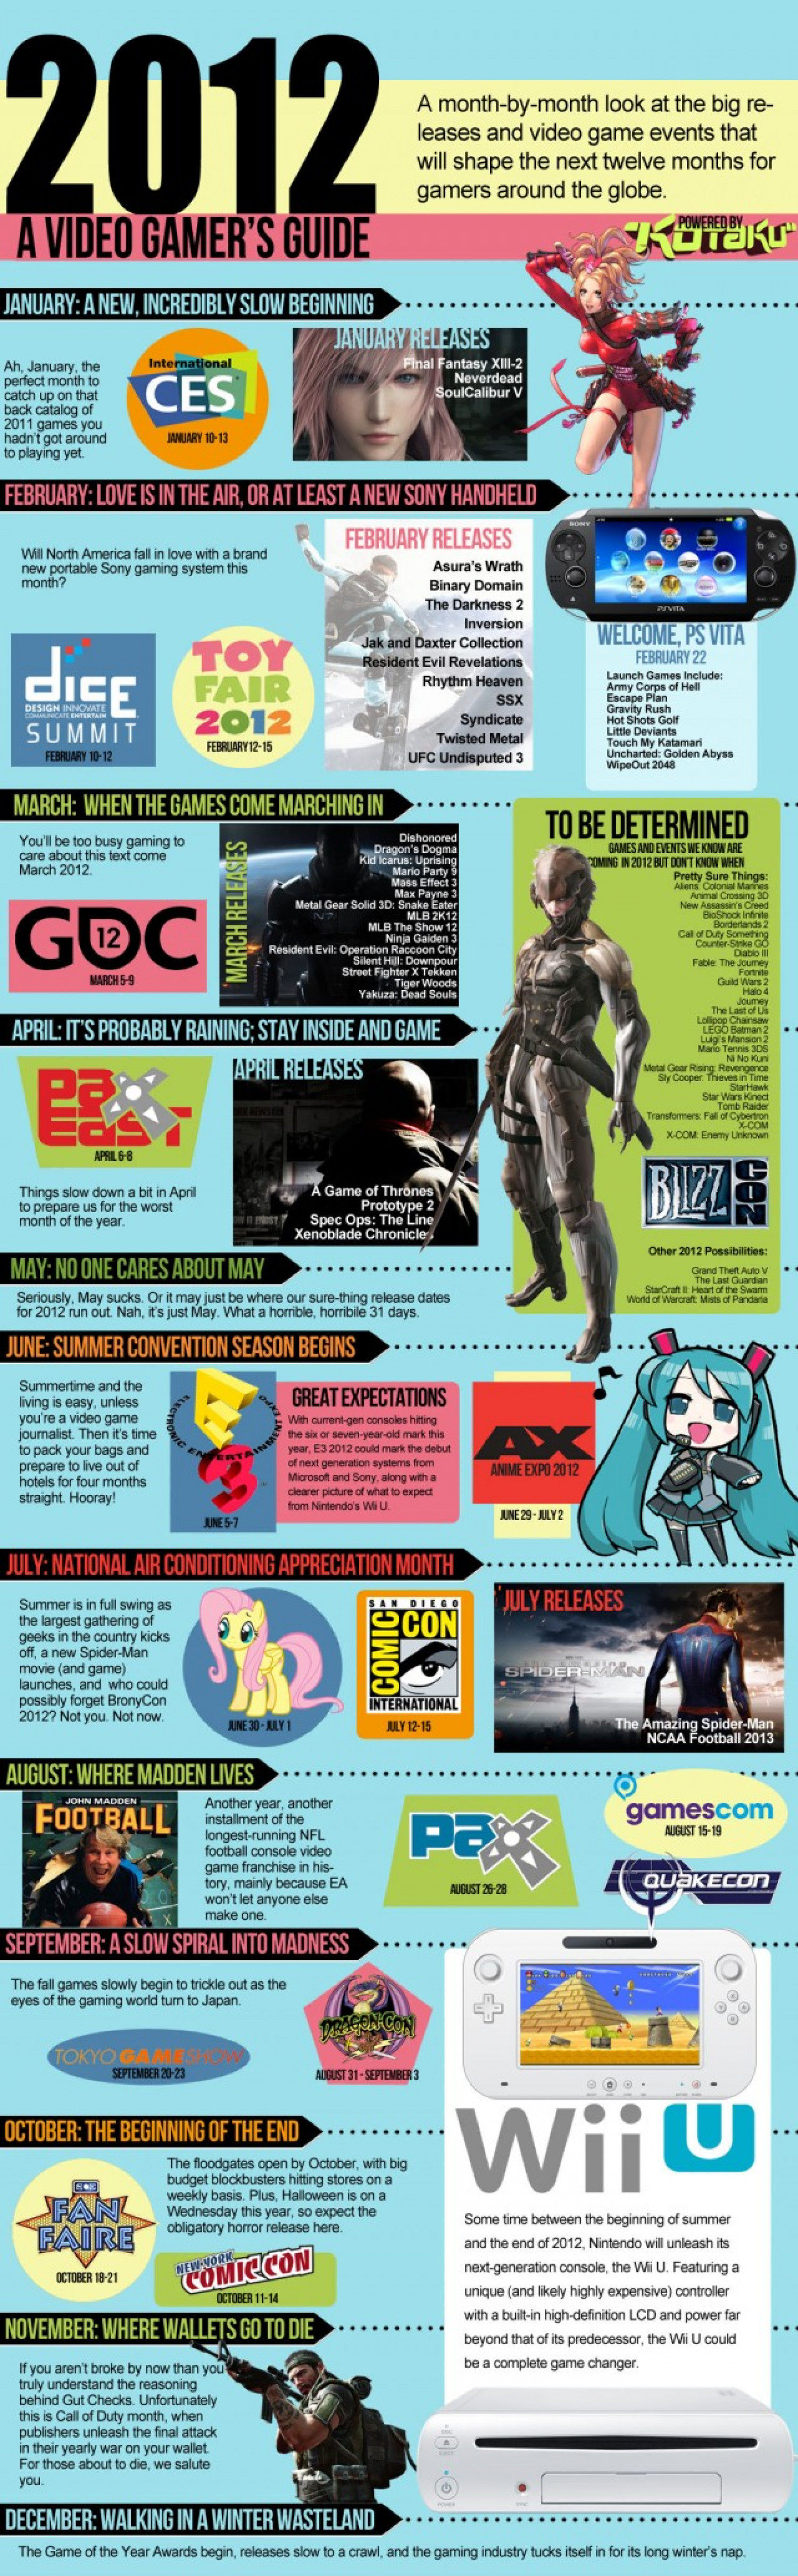 2012 Video Gamer Release Guide  Amazing Infographics Infographic